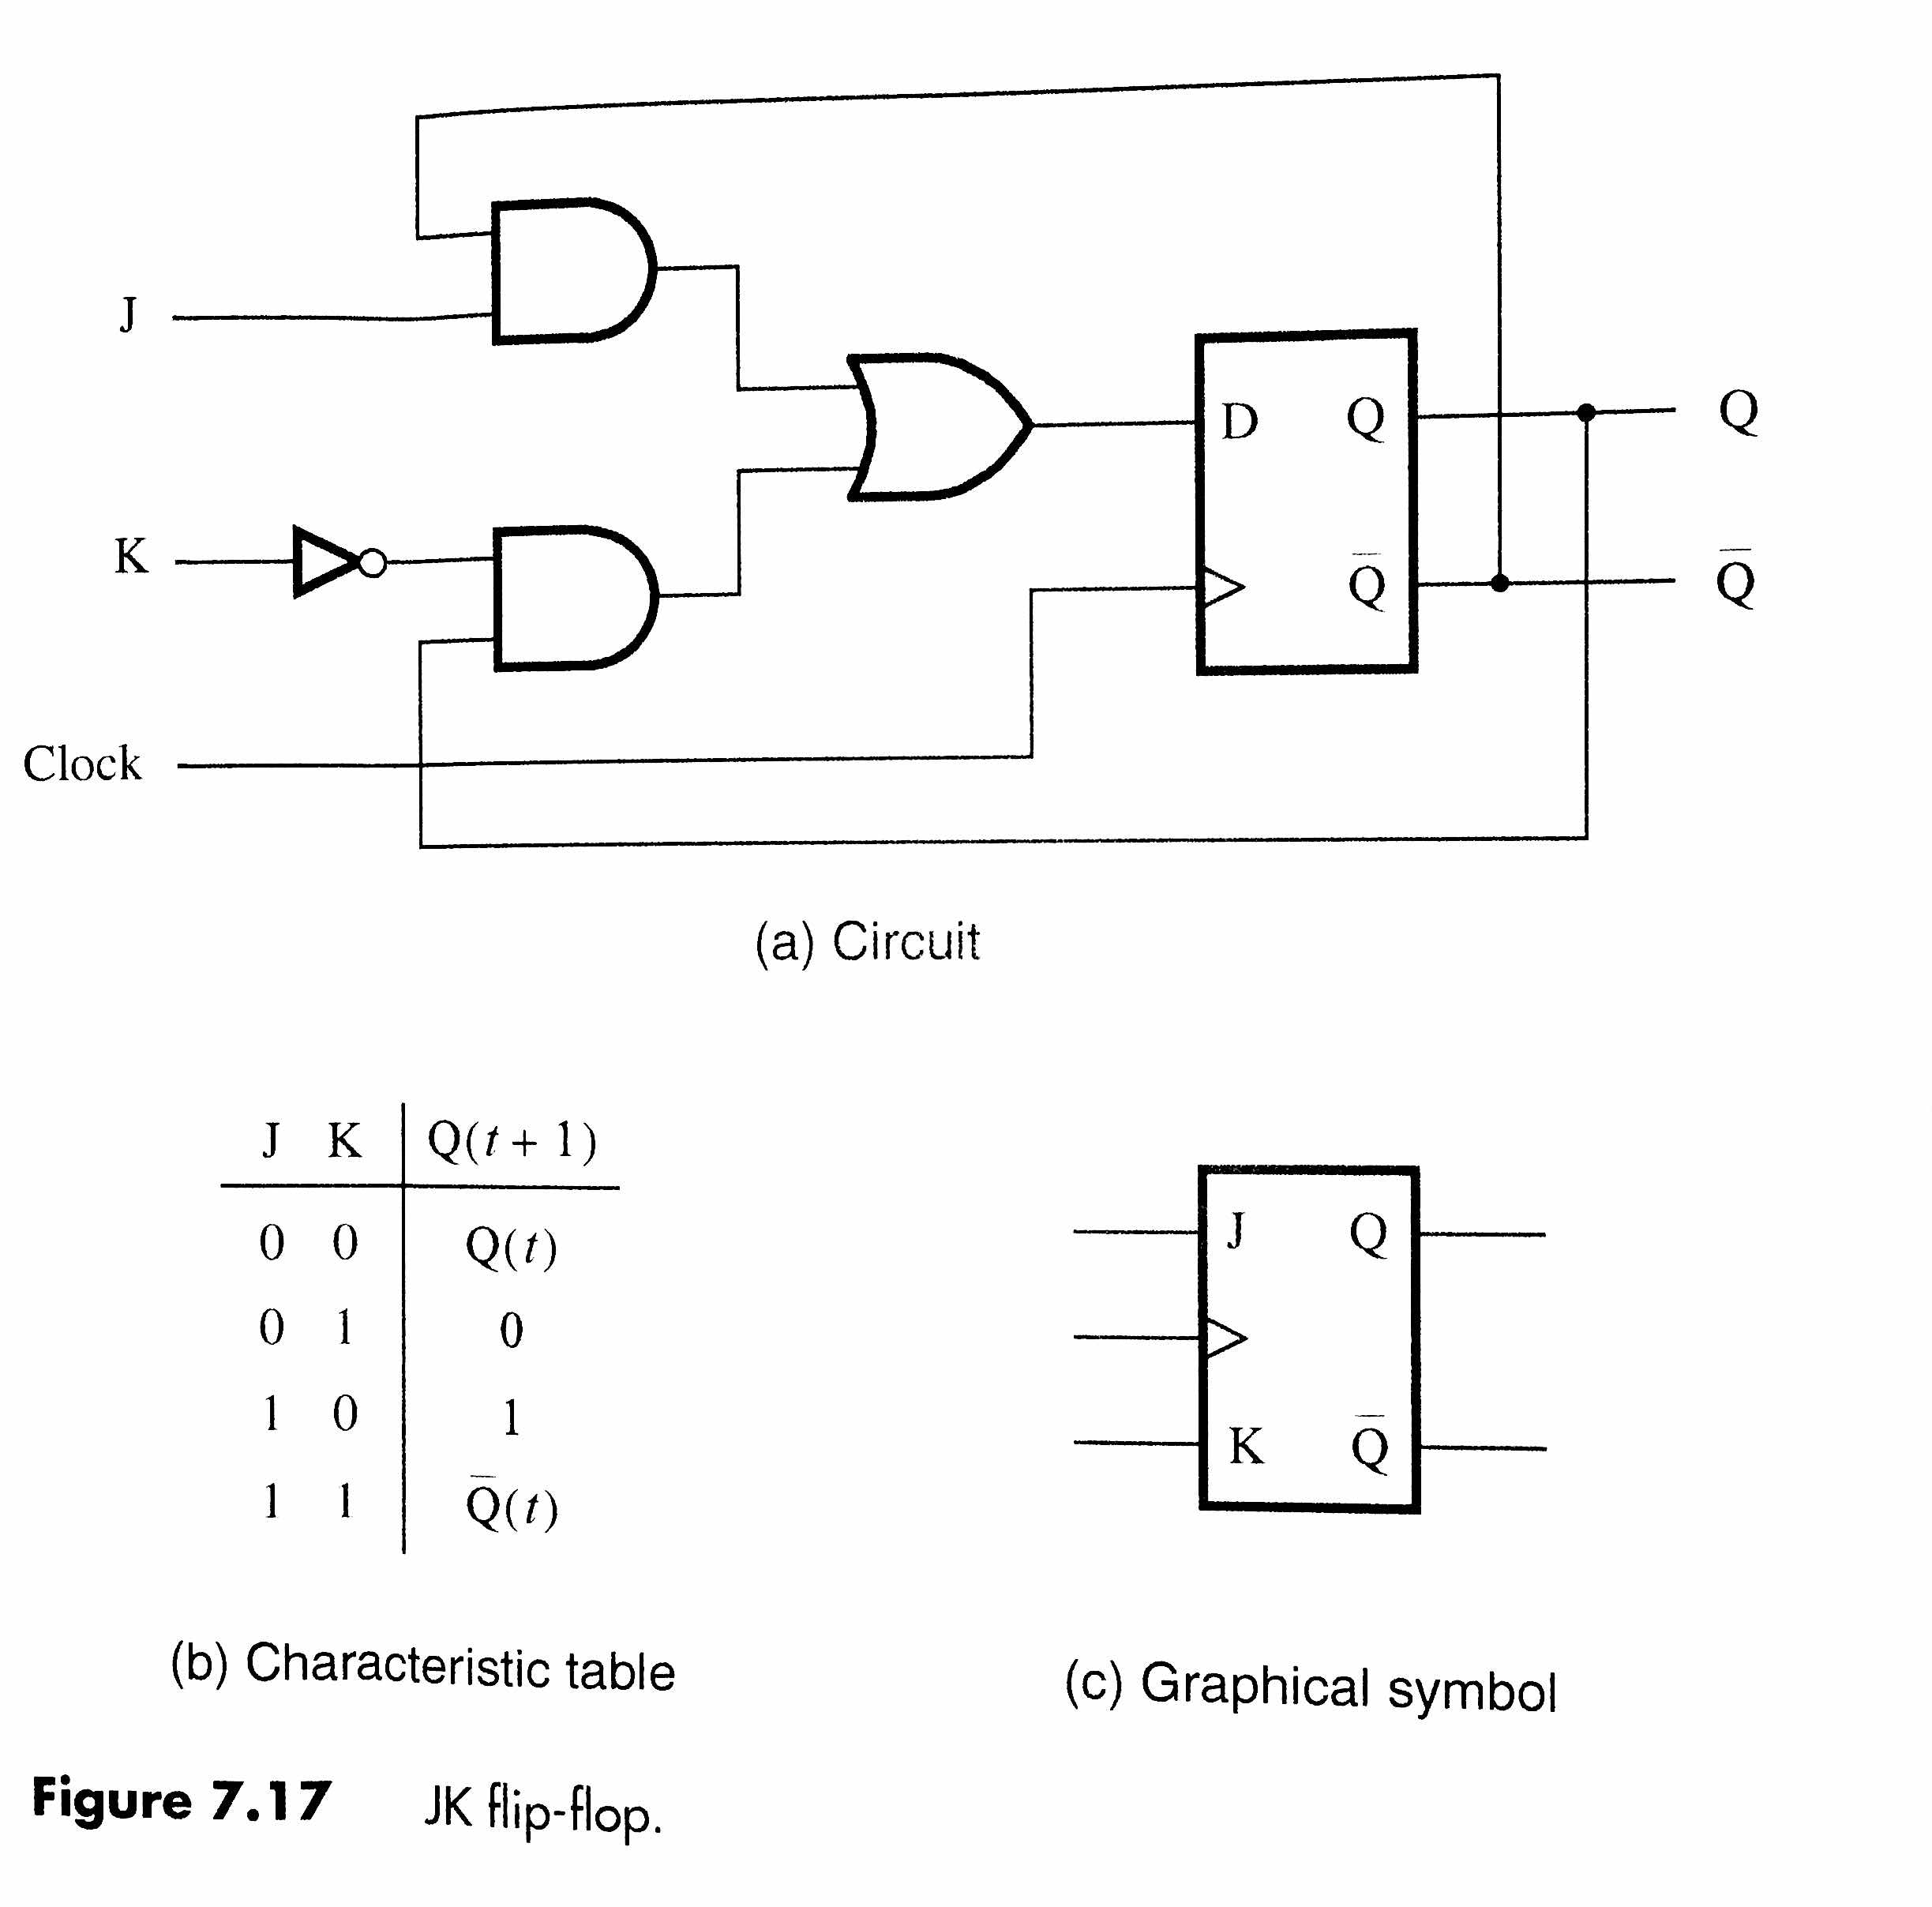 Finally, draw the circuit for the JK FF constructed from a T FF. Compare  your circuit with Figure 7.17.